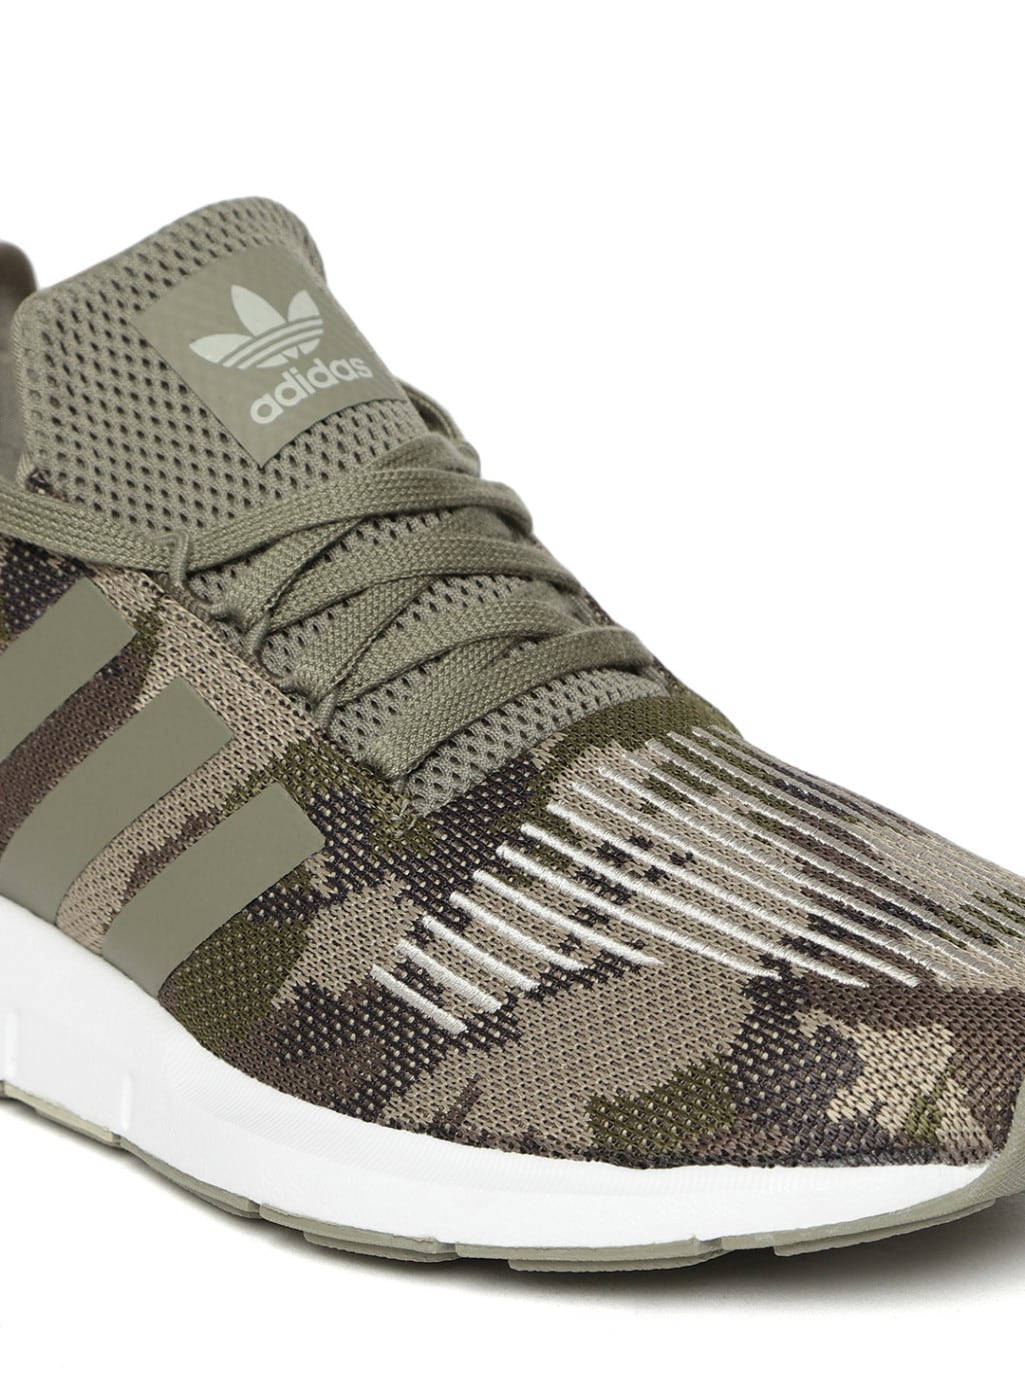 dfebe55b0ed Olive Shoes Adidas - Buy Olive Shoes Adidas online in India - Jabong